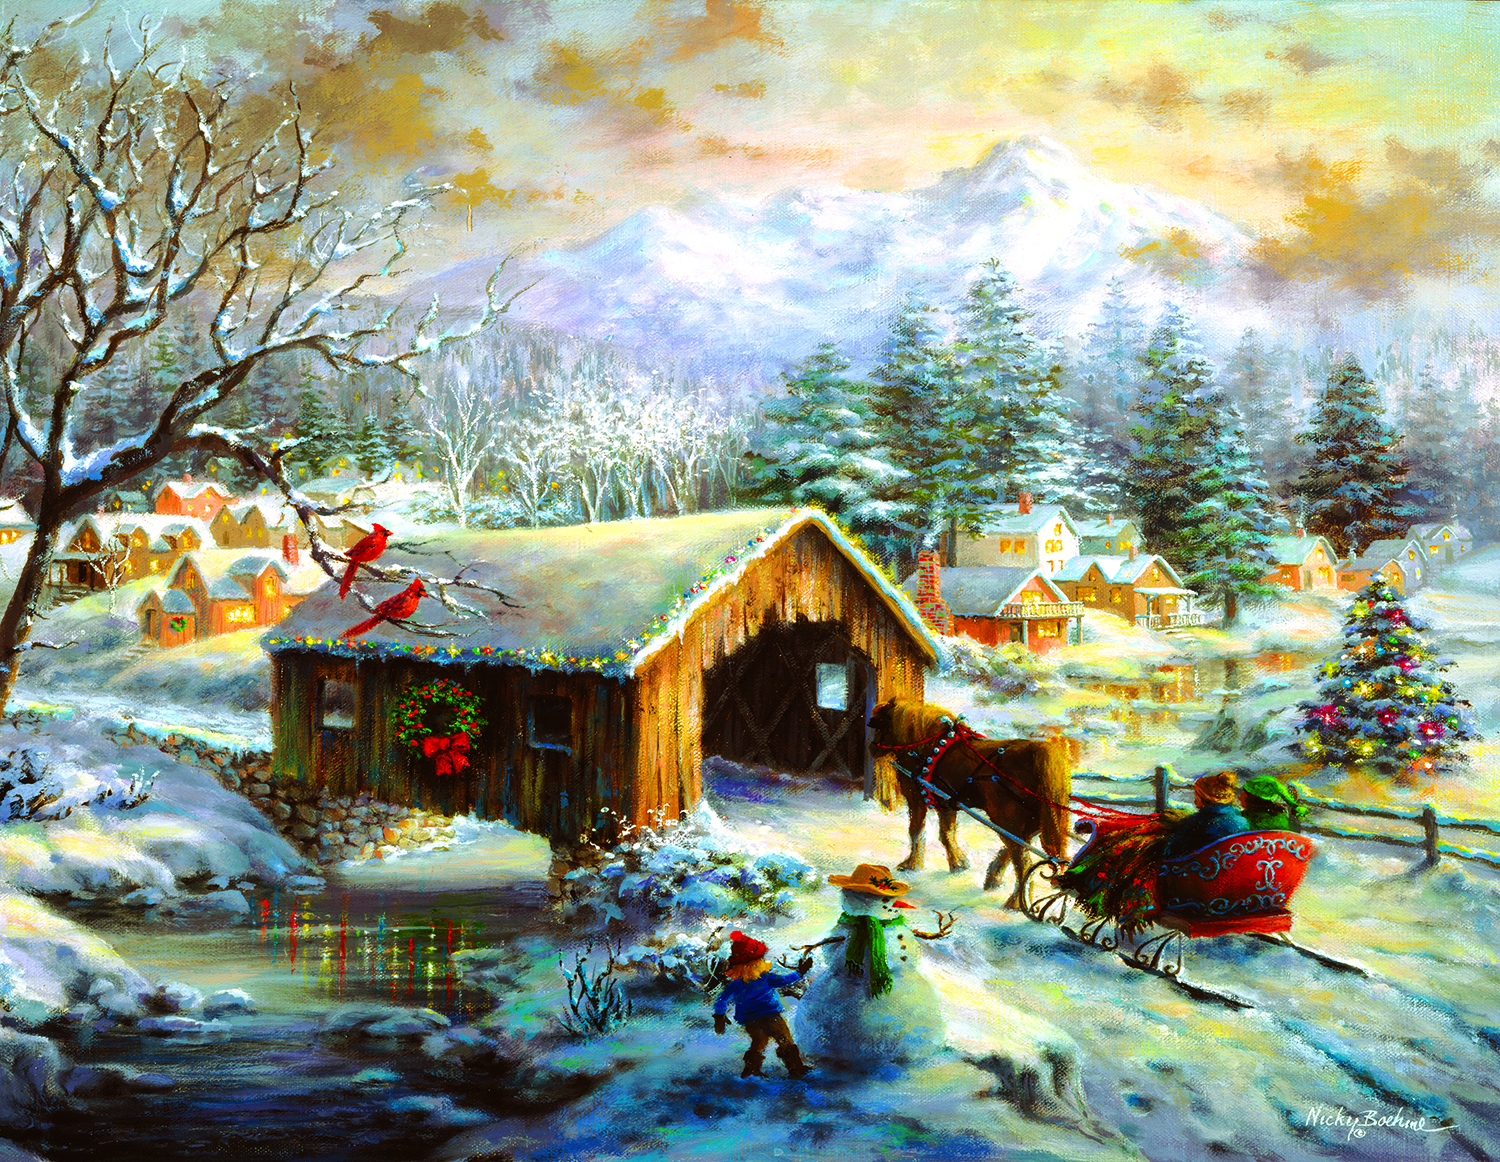 sunsout-nicky-boehme-over-the-covered-bridge-1000-teile-puzzle-sunsout-19319